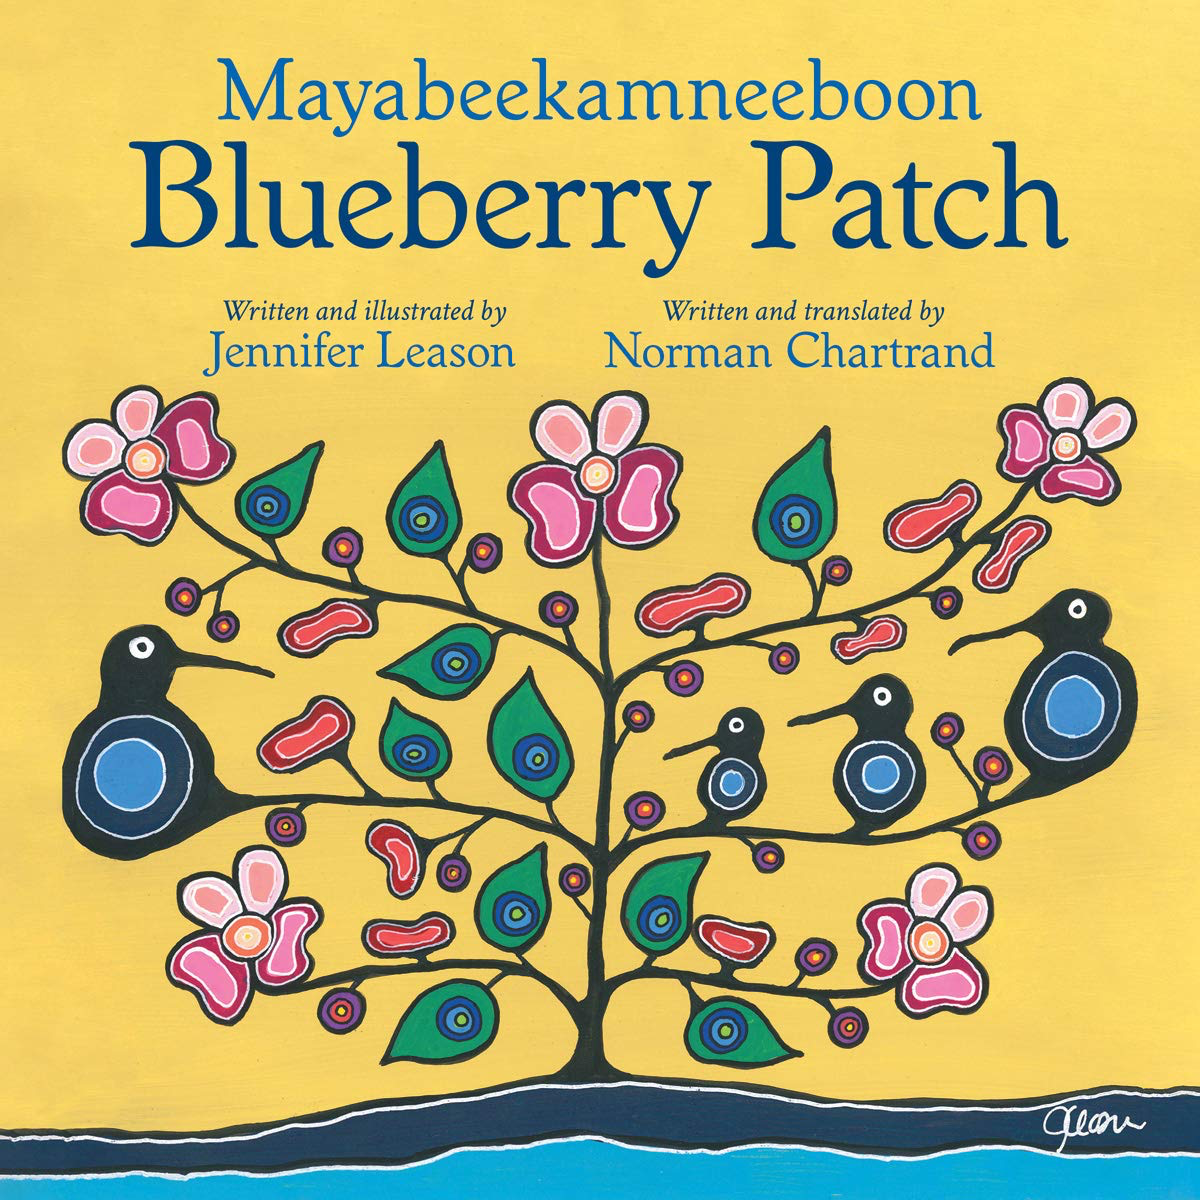 Meennunyakaa: Blueberry Patch